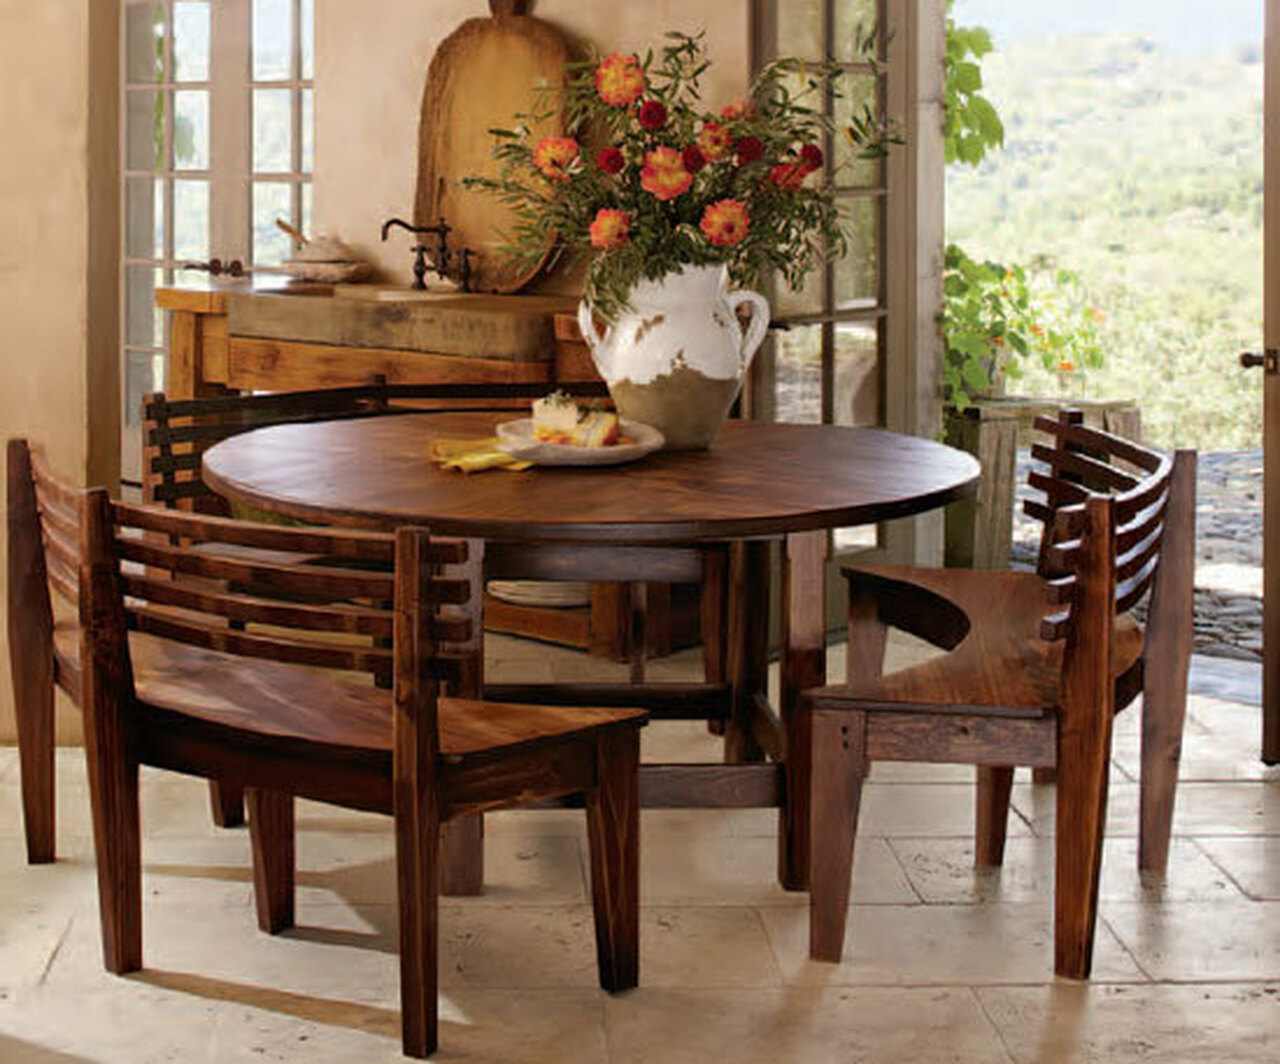 Dining Sets With Benches Wooden Round Table Wooden Curves Benches .